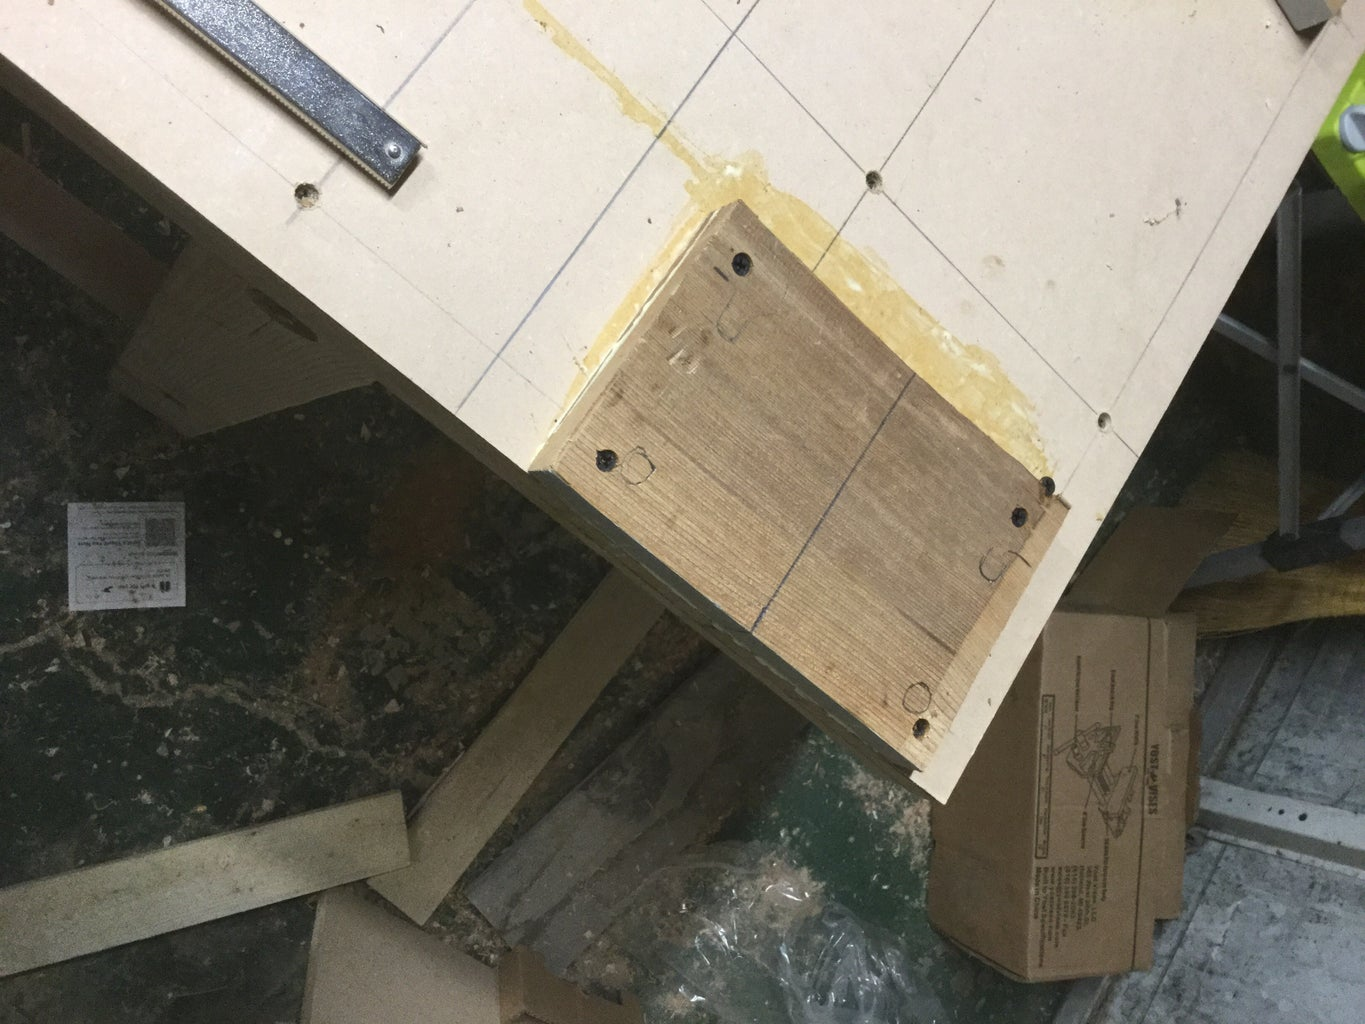 Mounting Block for Vise